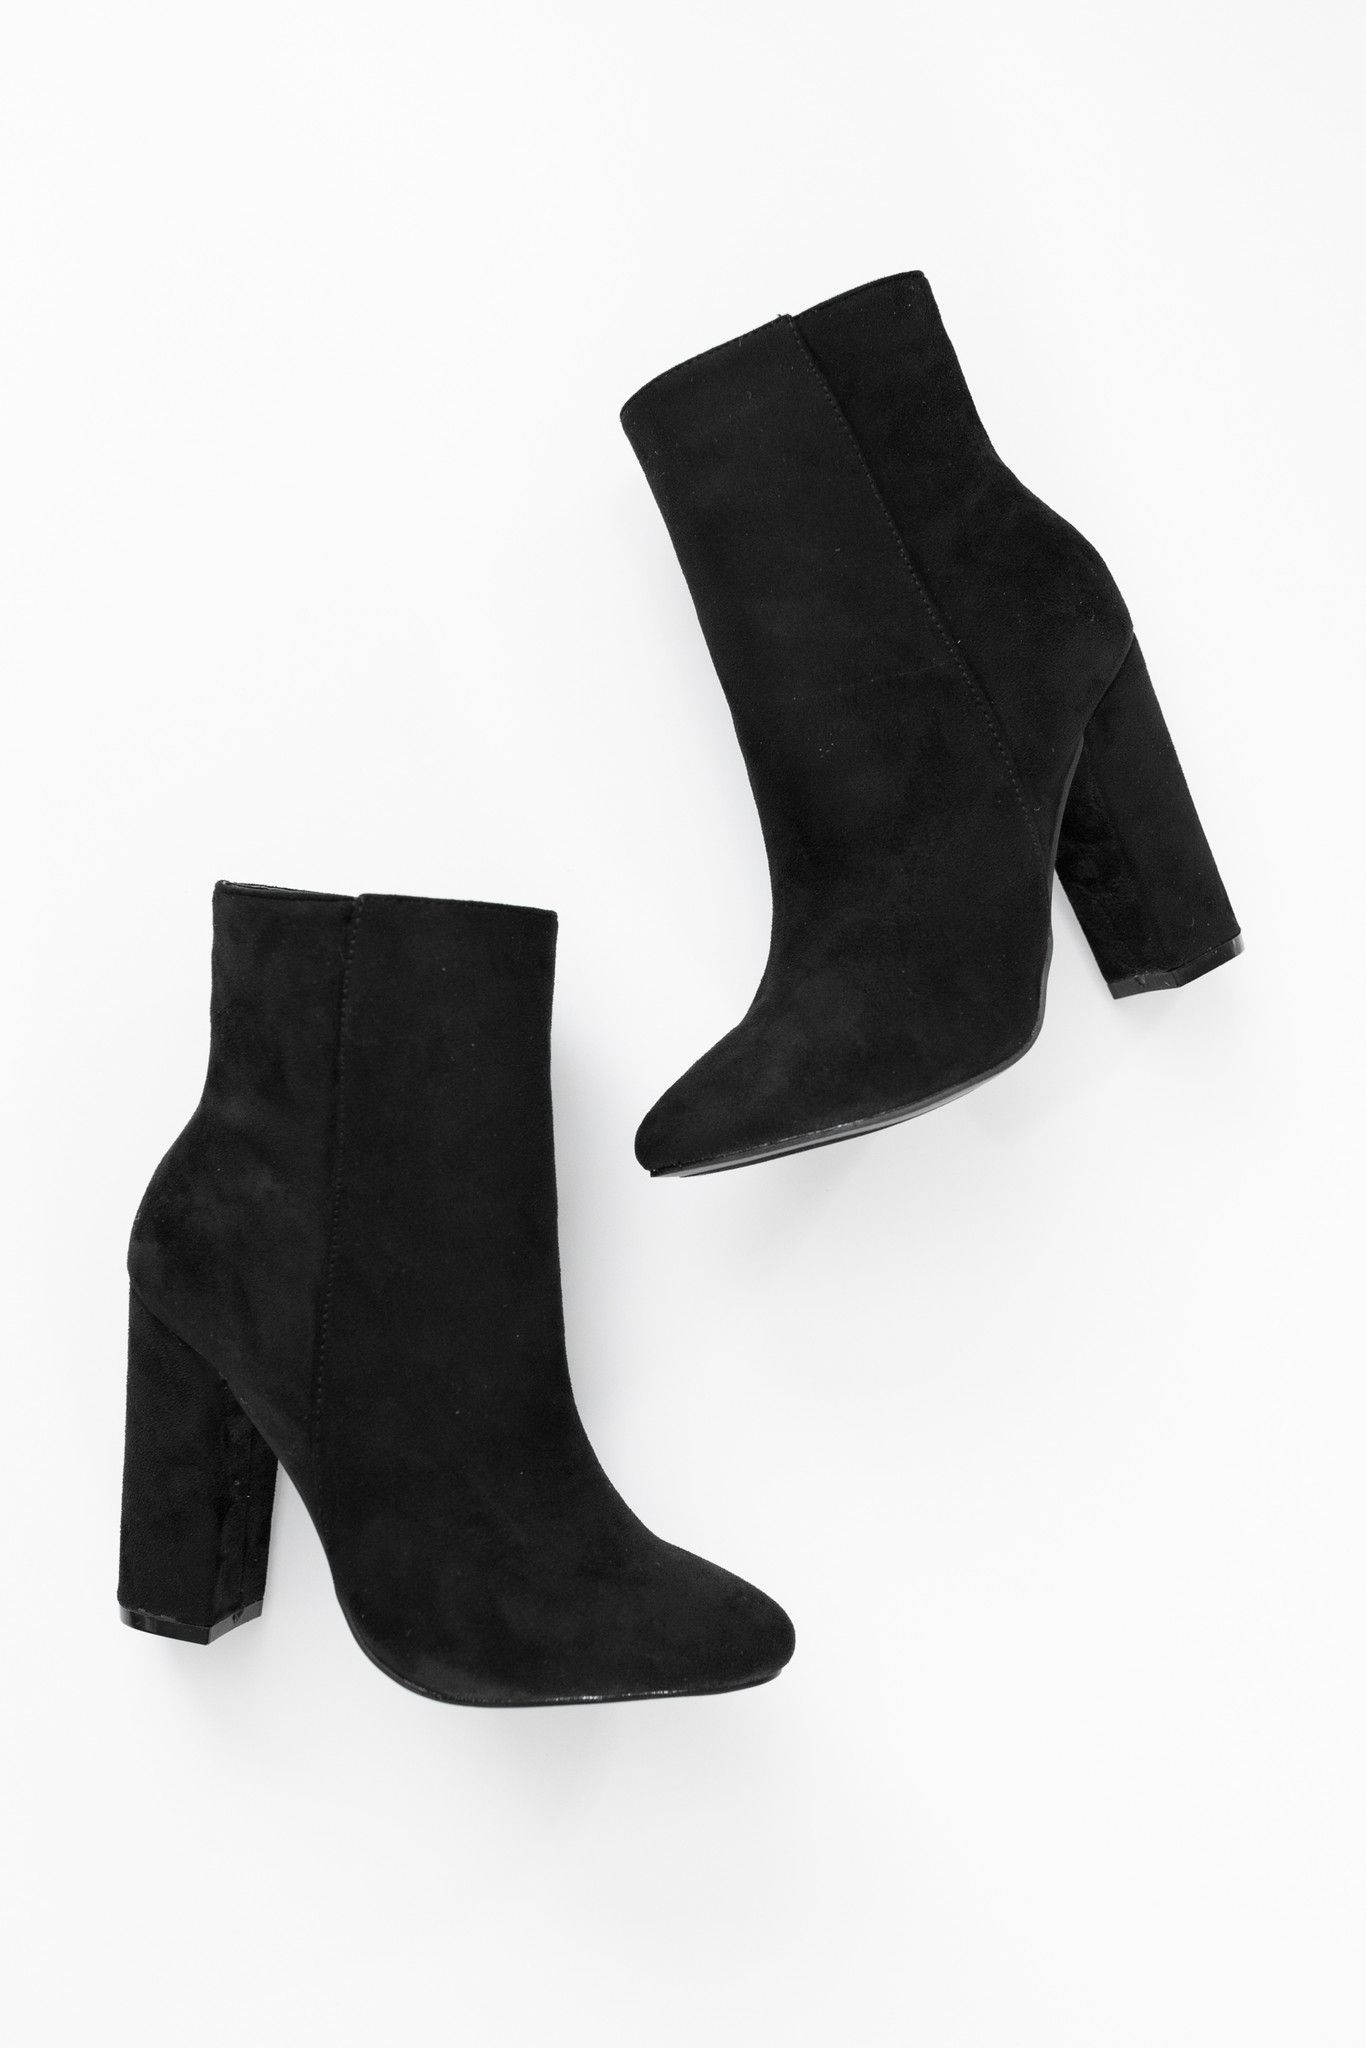 Black faux suede high ankle booties with side zipper and 4